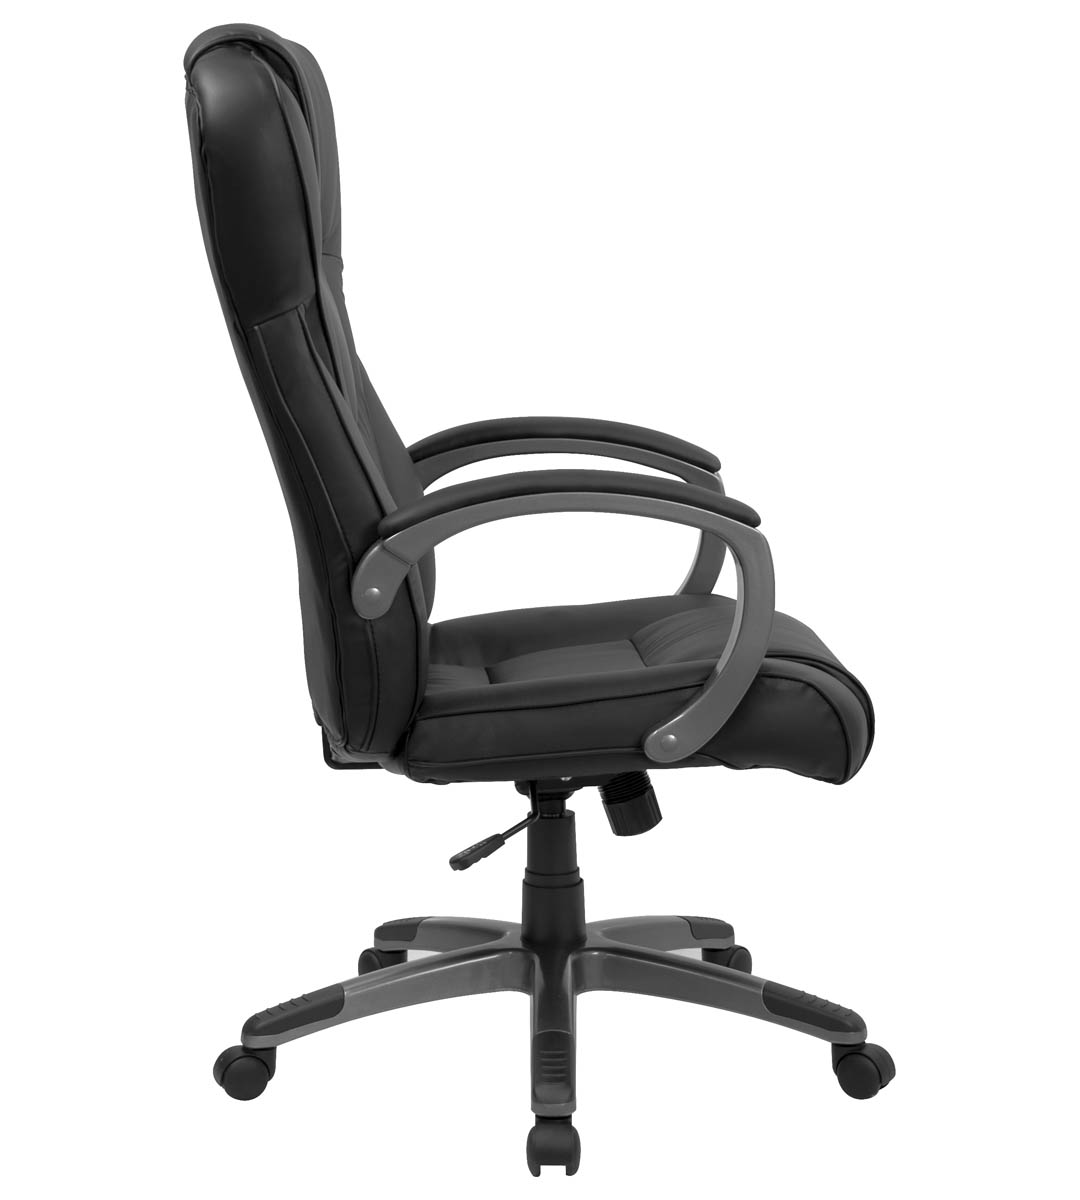 Plush Office Chair Formfit Extra Plush Executive Black Leather Office Chair